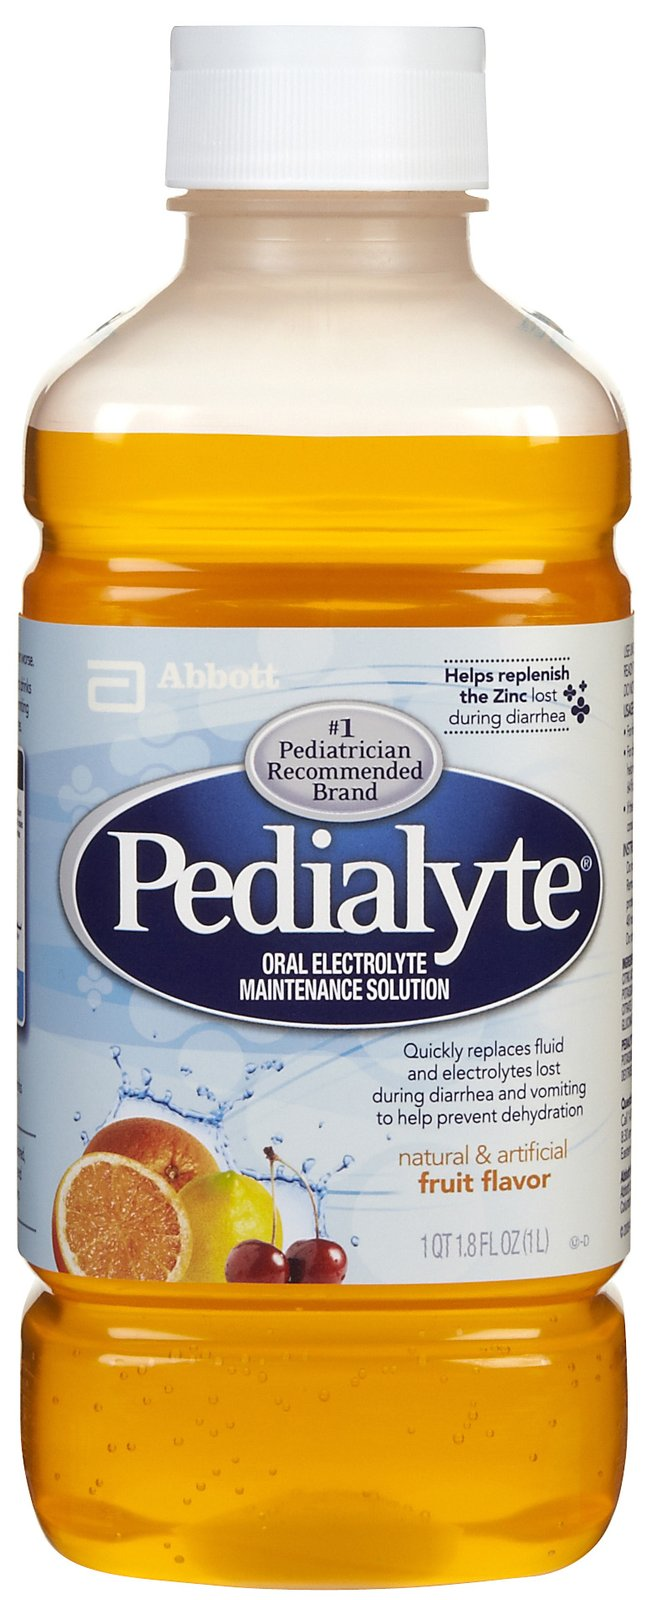 Pedialyte Is A Wonderful Thing It S A Everyday A Few Times A Day Part Of Lale S Life She Doesnot Have To Tak Homemade Electrolyte Drink Electrolytes Fruit